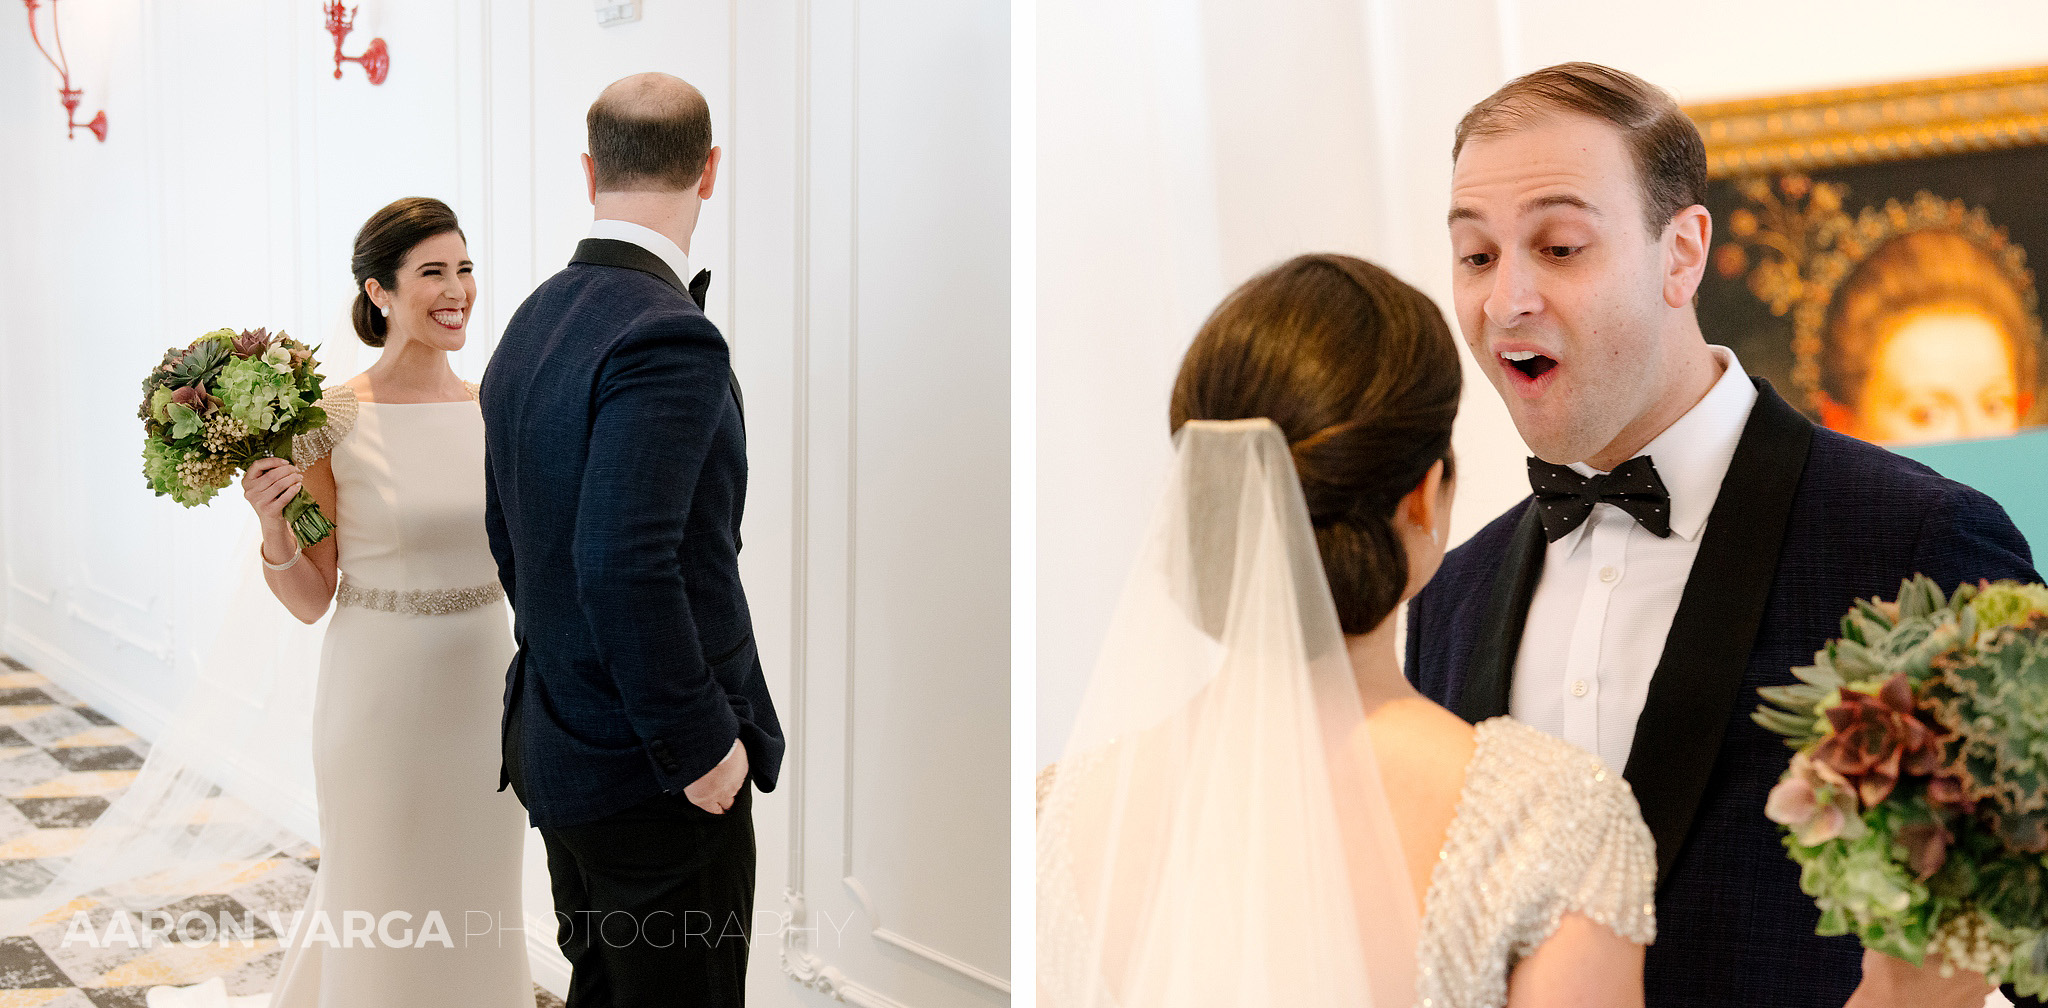 11 first look at hotel monaco - Mimi + Mike | Hotel Monaco and J. Verno Studios Wedding Photos